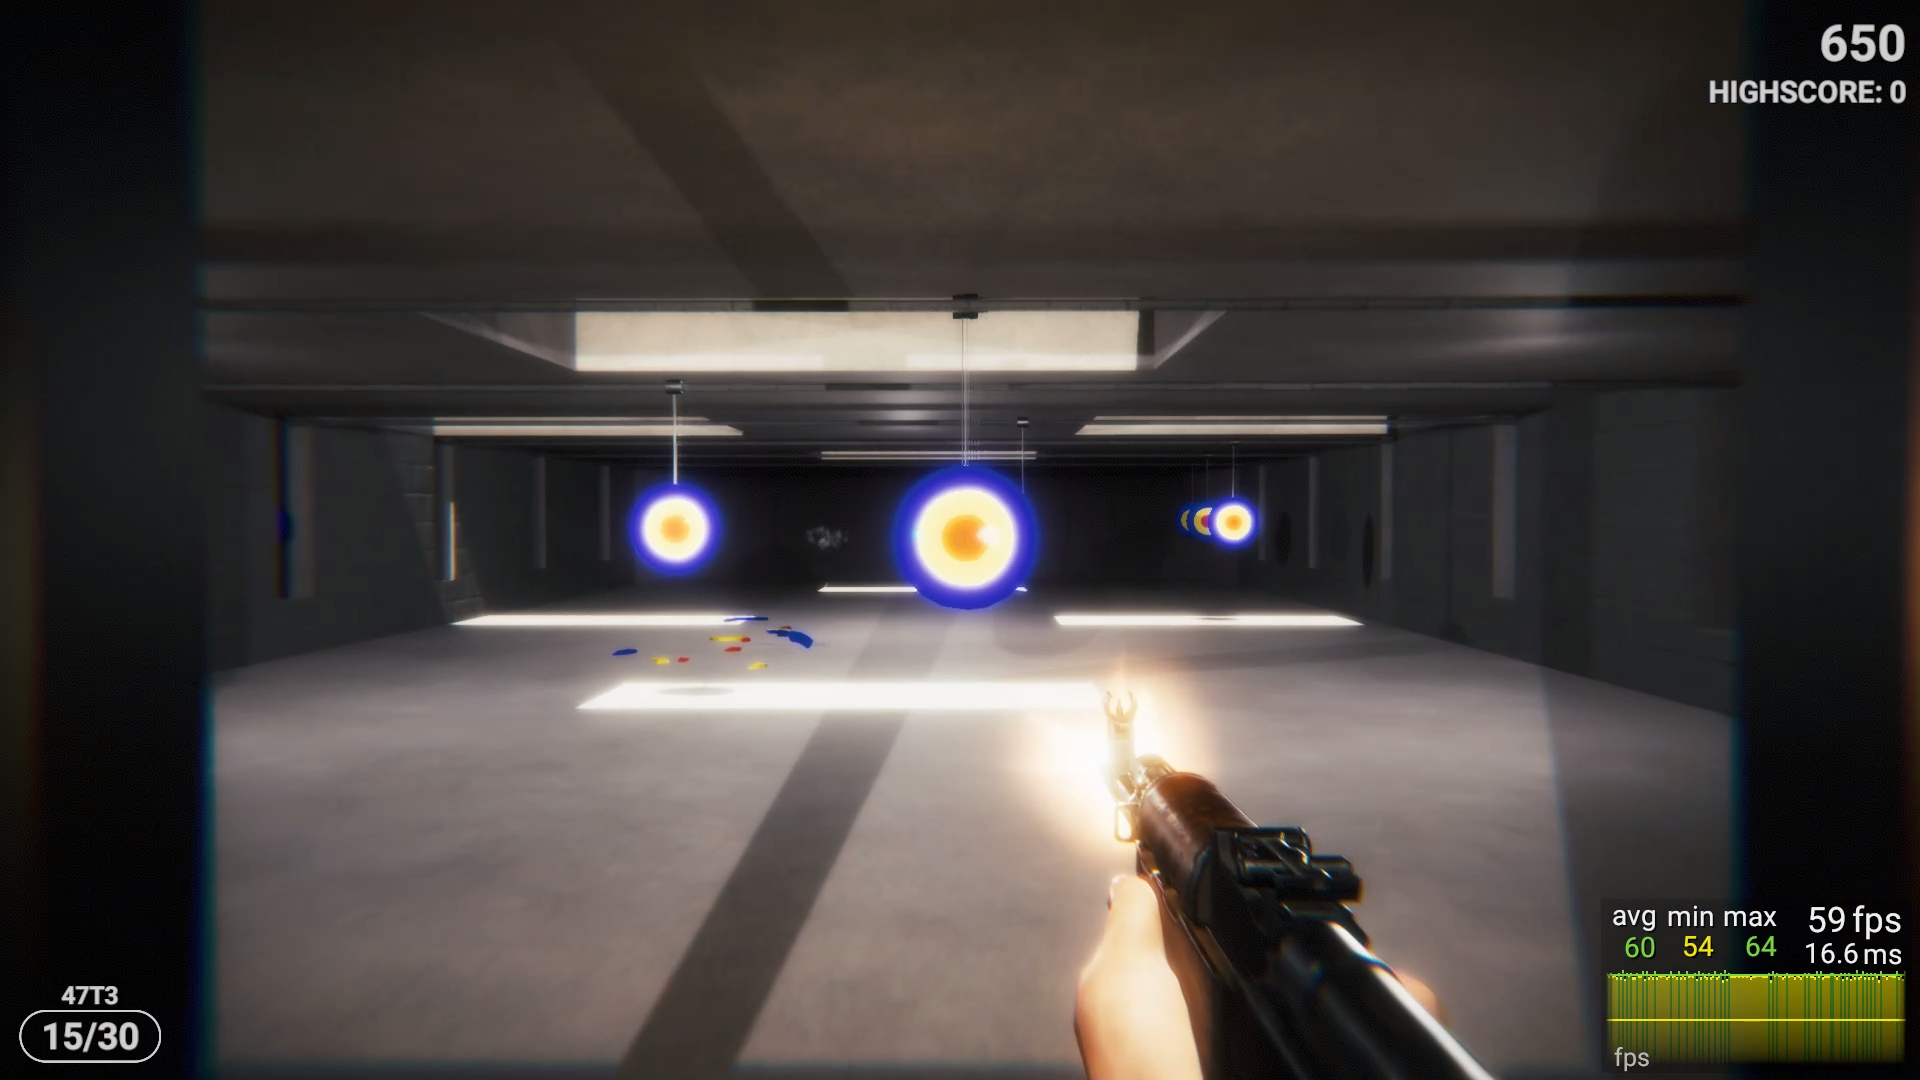 I made a target practice game to test the gun mechanics for